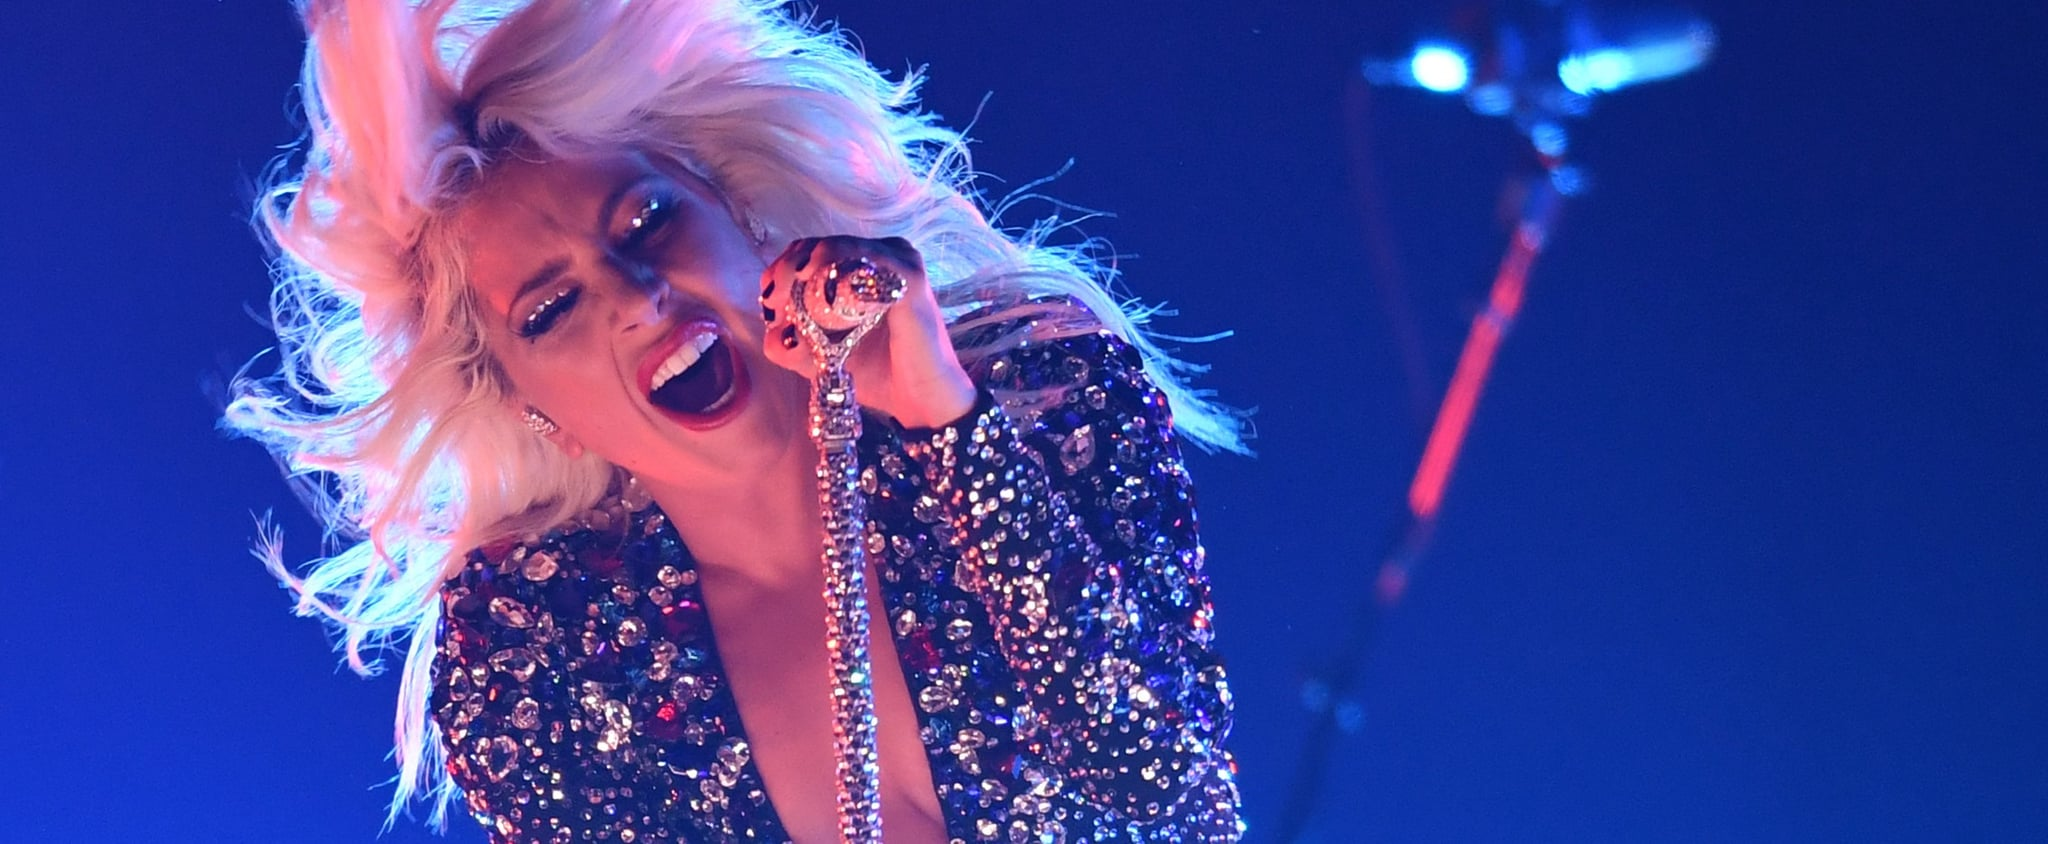 What Is Lady Gaga's Net Worth?